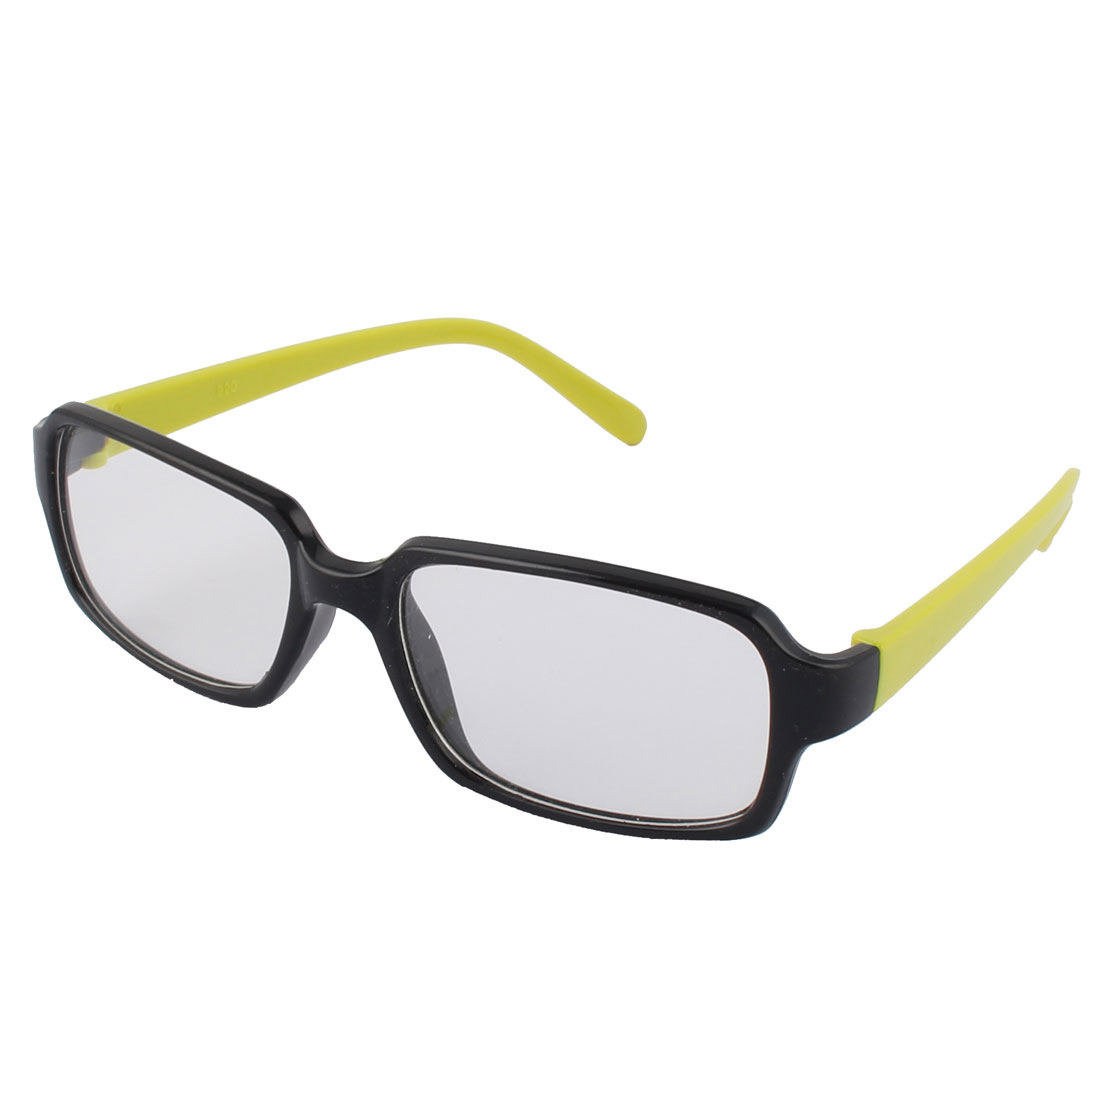 Students Stylish Clear Square Lens Light Green Black Frame Plastic Eye Plain Glass